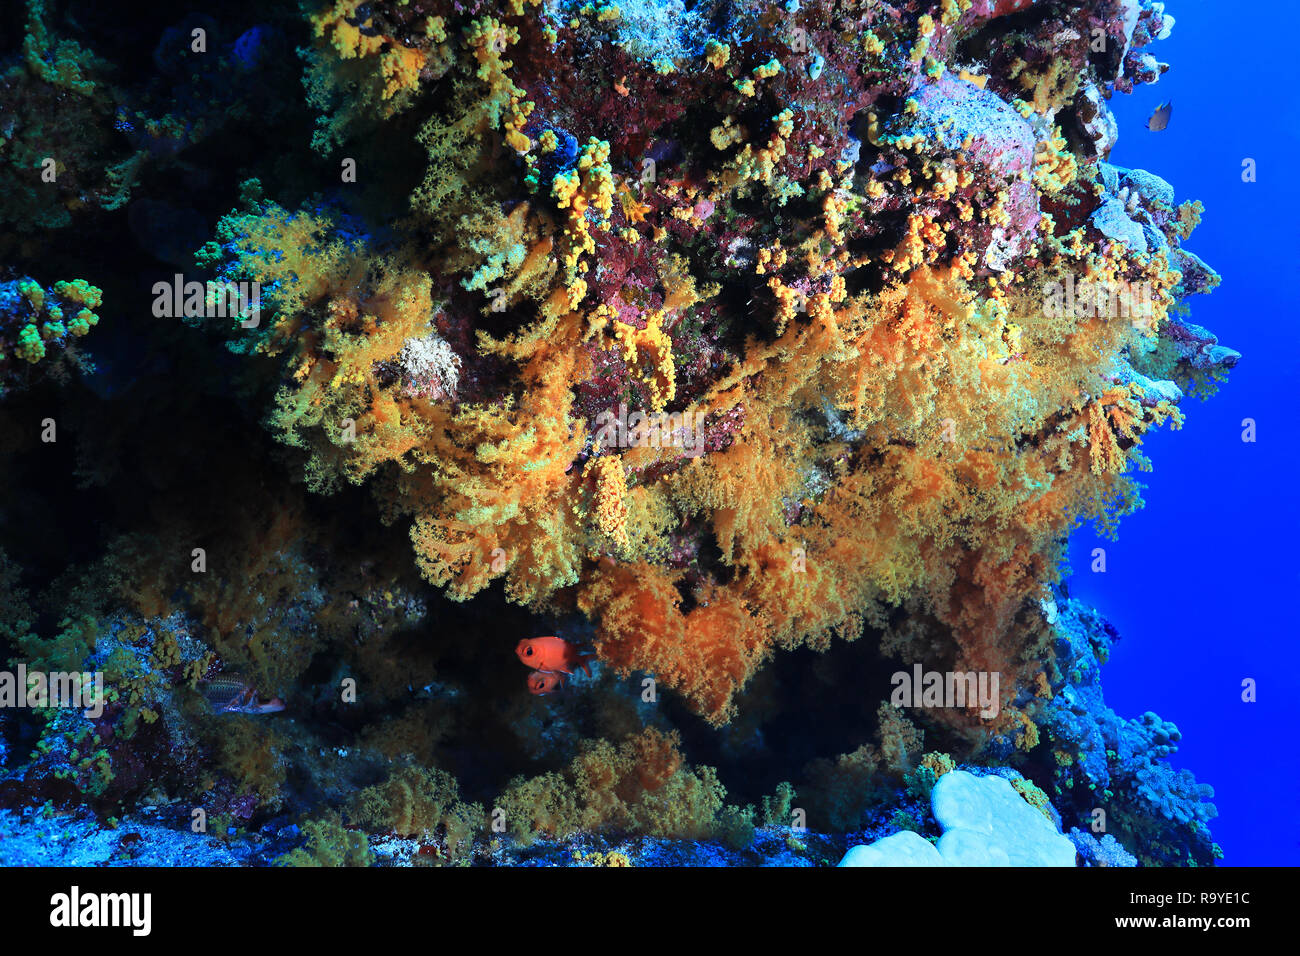 Beautiful soft corals underwater in the Great Barrier Reef of Australia - Stock Image